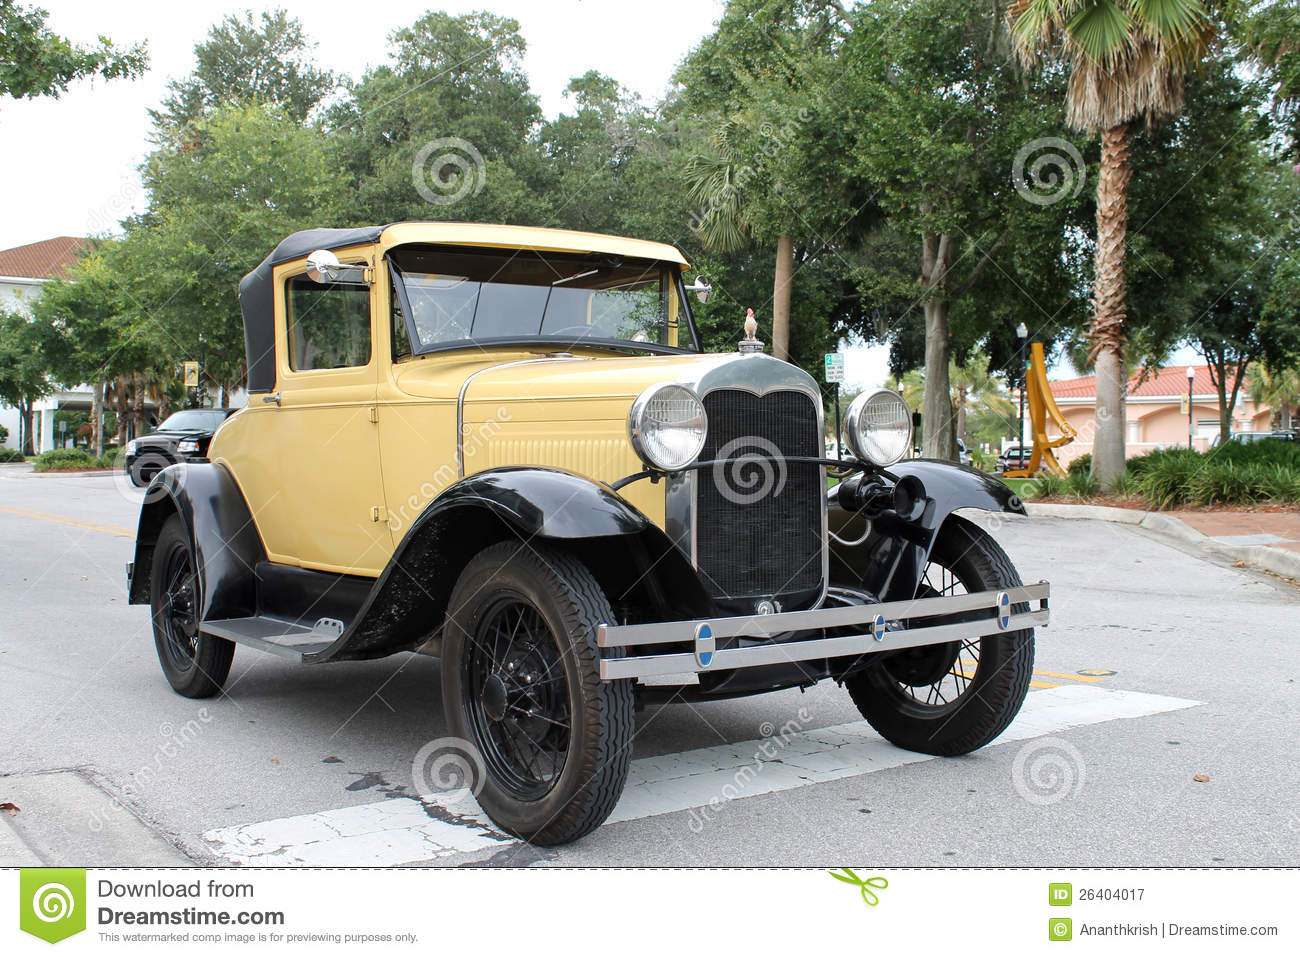 The old ford car